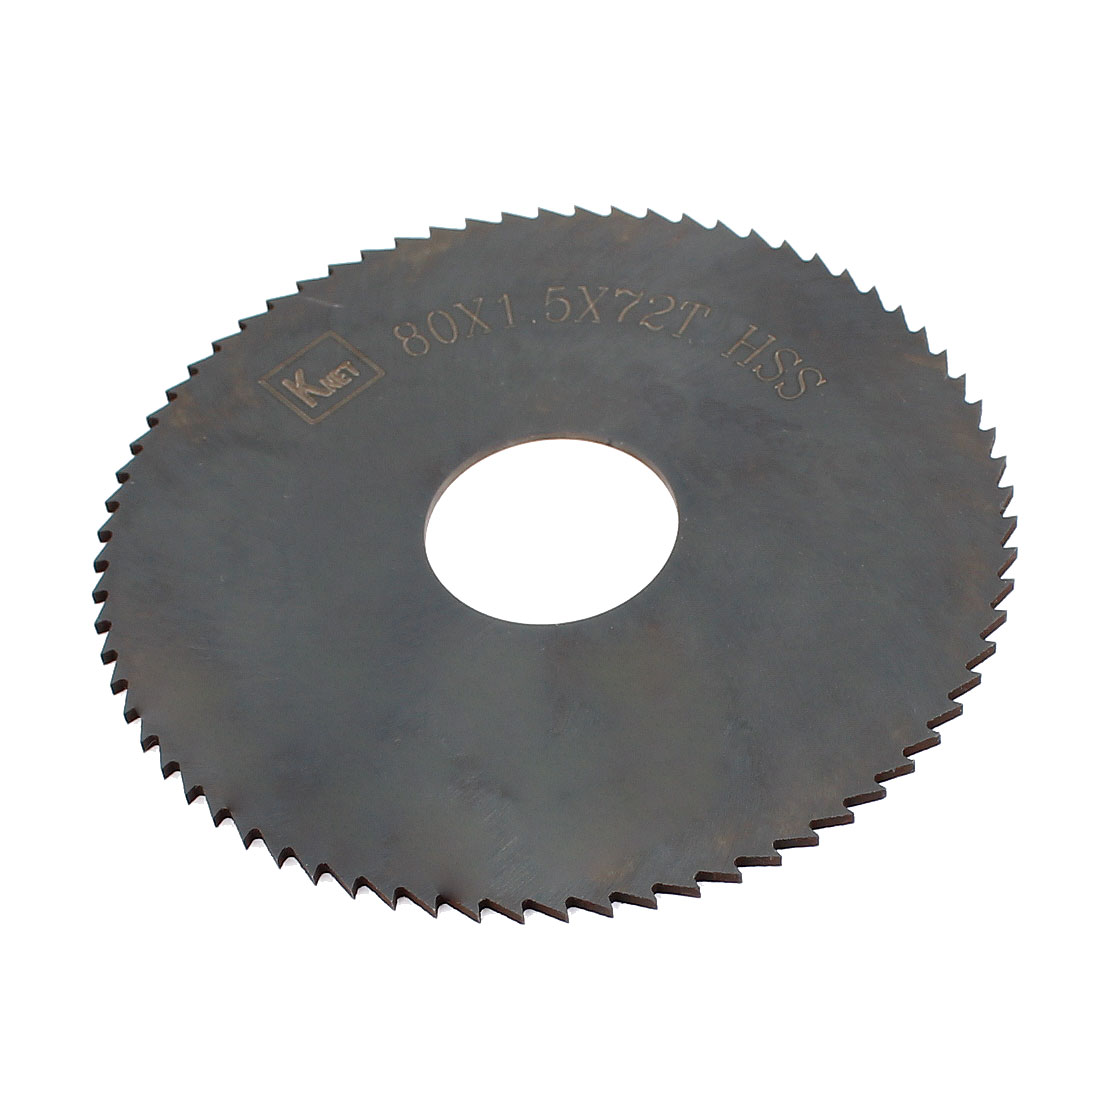 HSS 72 Teeth 80mm x 1.5mm x 22mm Slitting Saw Blade Spare Part